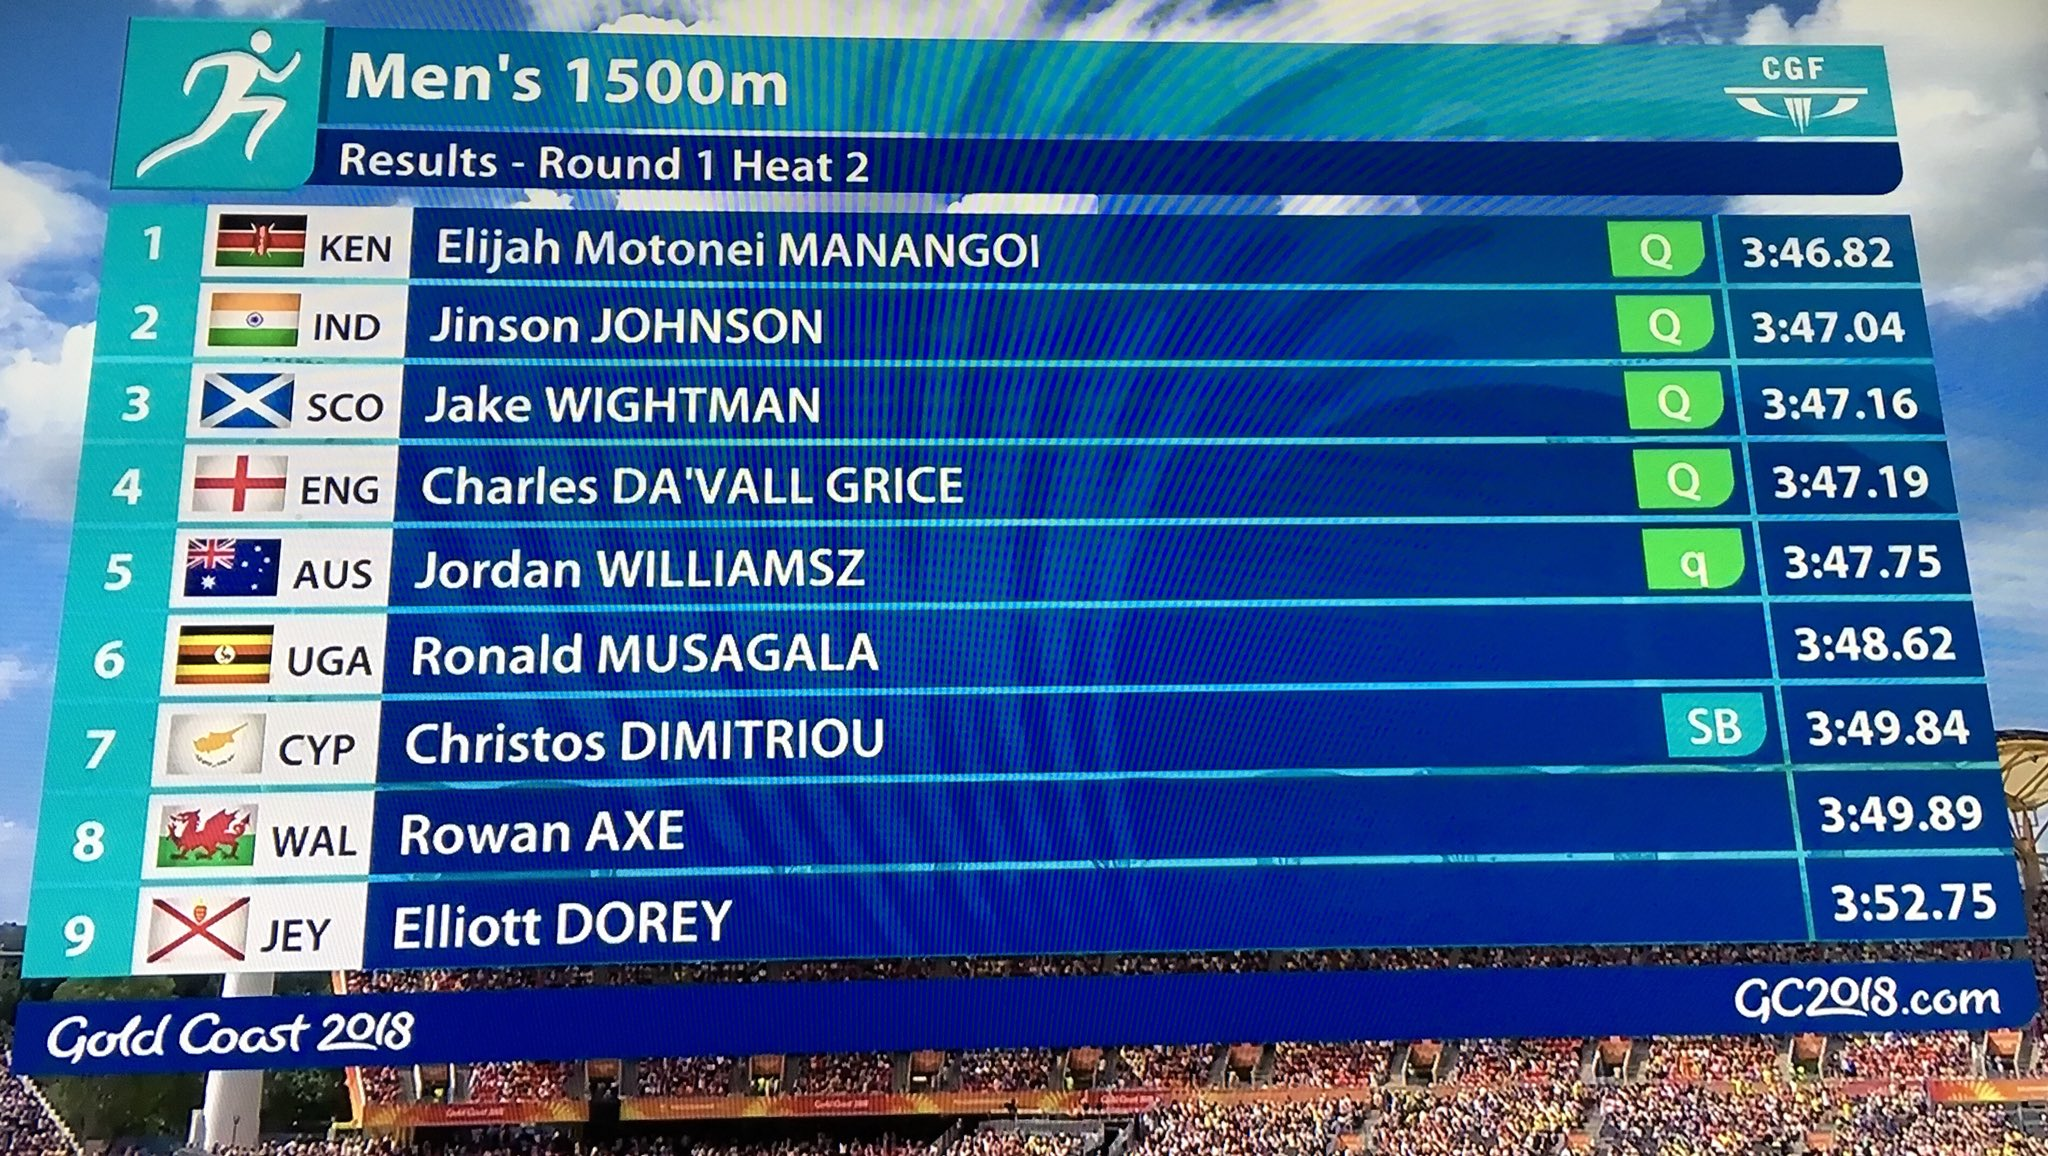 #Kenya's @ManangoiElijah wins the Men's 1500m Semifinals heat 2 in 3:46.82.   #Uganda's Ronald Musagala misses out in 6th place with 3:48.62.  #GC2018 #GC2018Athletics #AthleticsAfrica https://t.co/2CJuIAtG8V